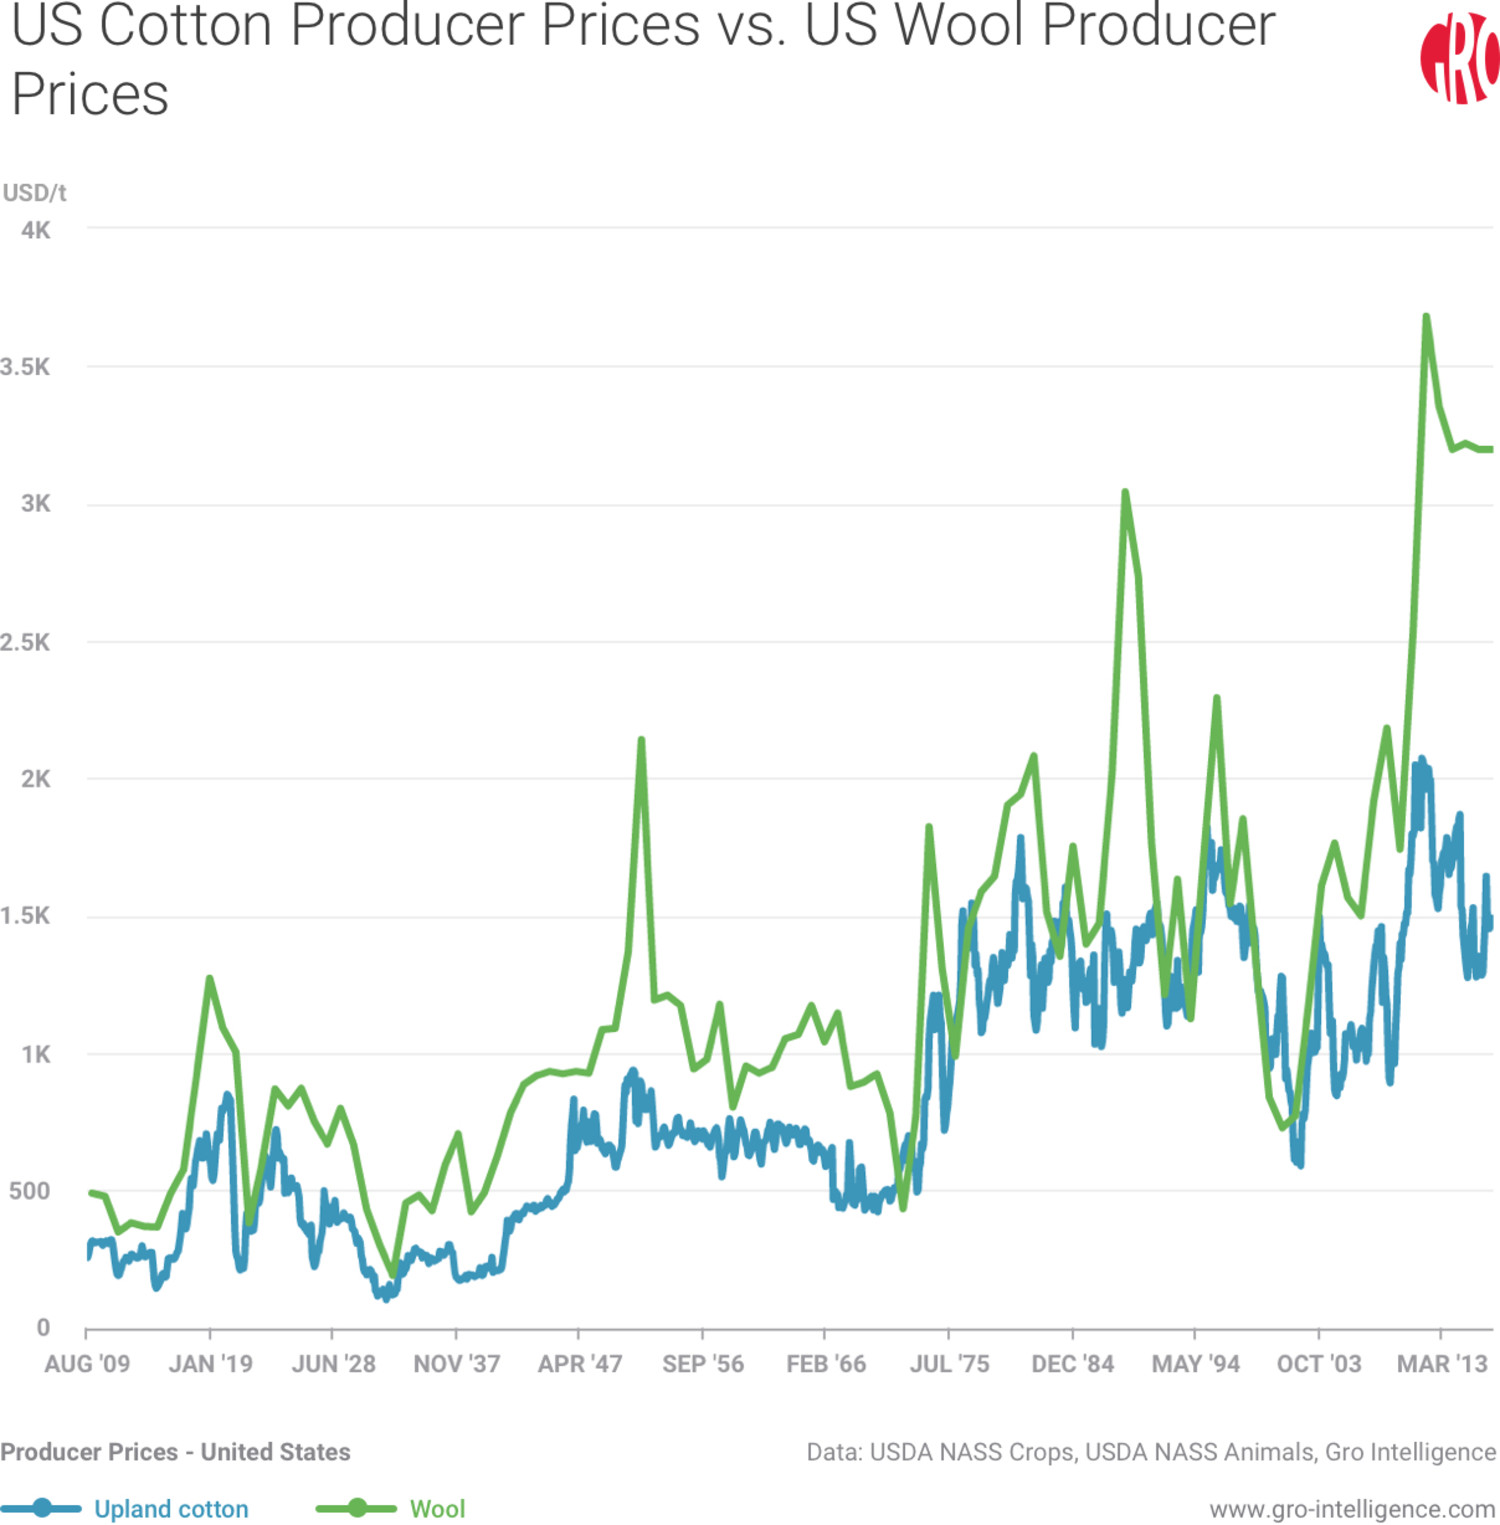 US Cotton Producer Prices vs. US Wool Producer Prices